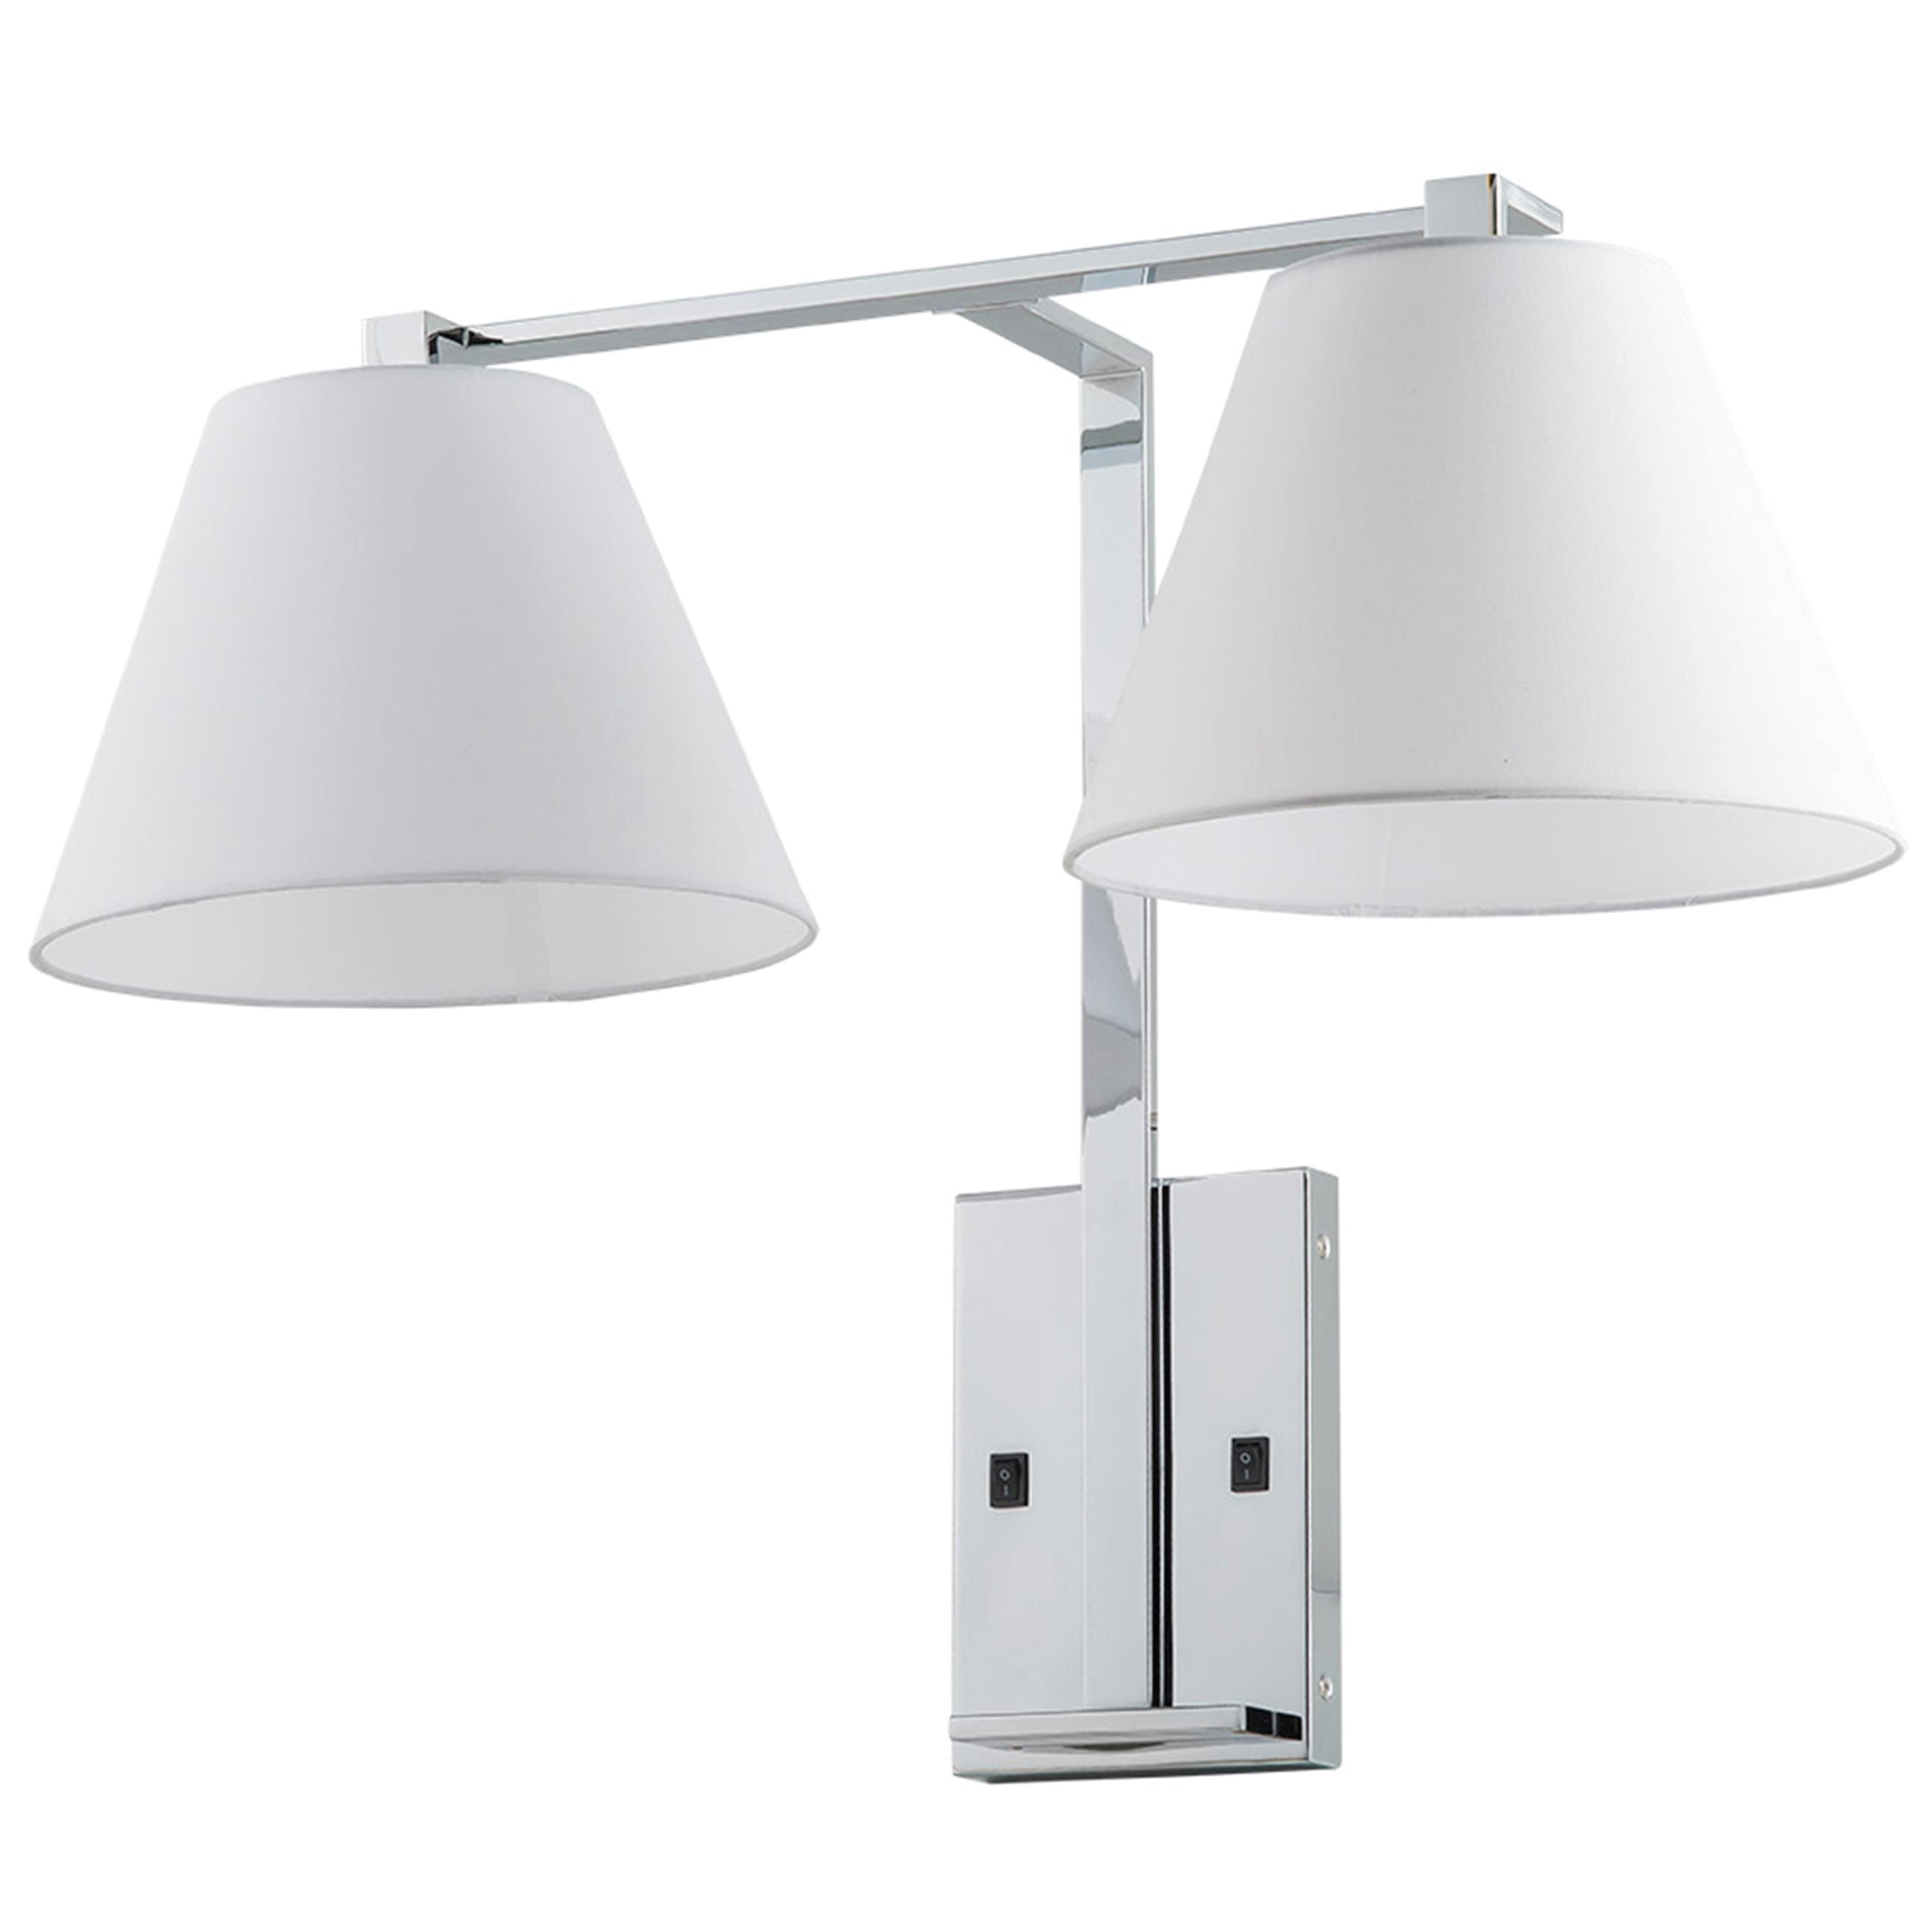 Confident Double Wall Lamp